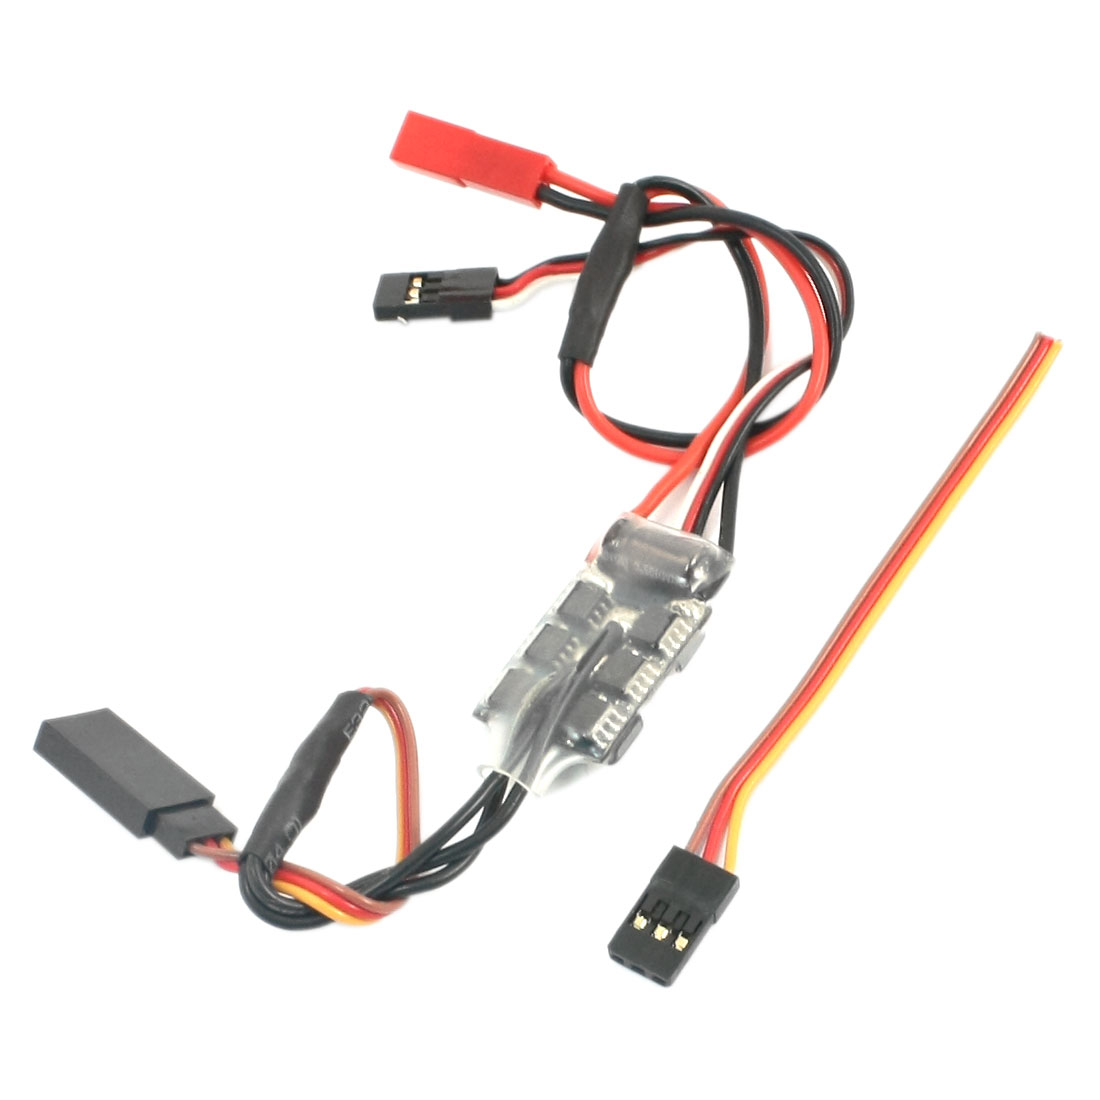 RC 10A BEC 1A Brushless ESC Speed Controller Lipo Battery